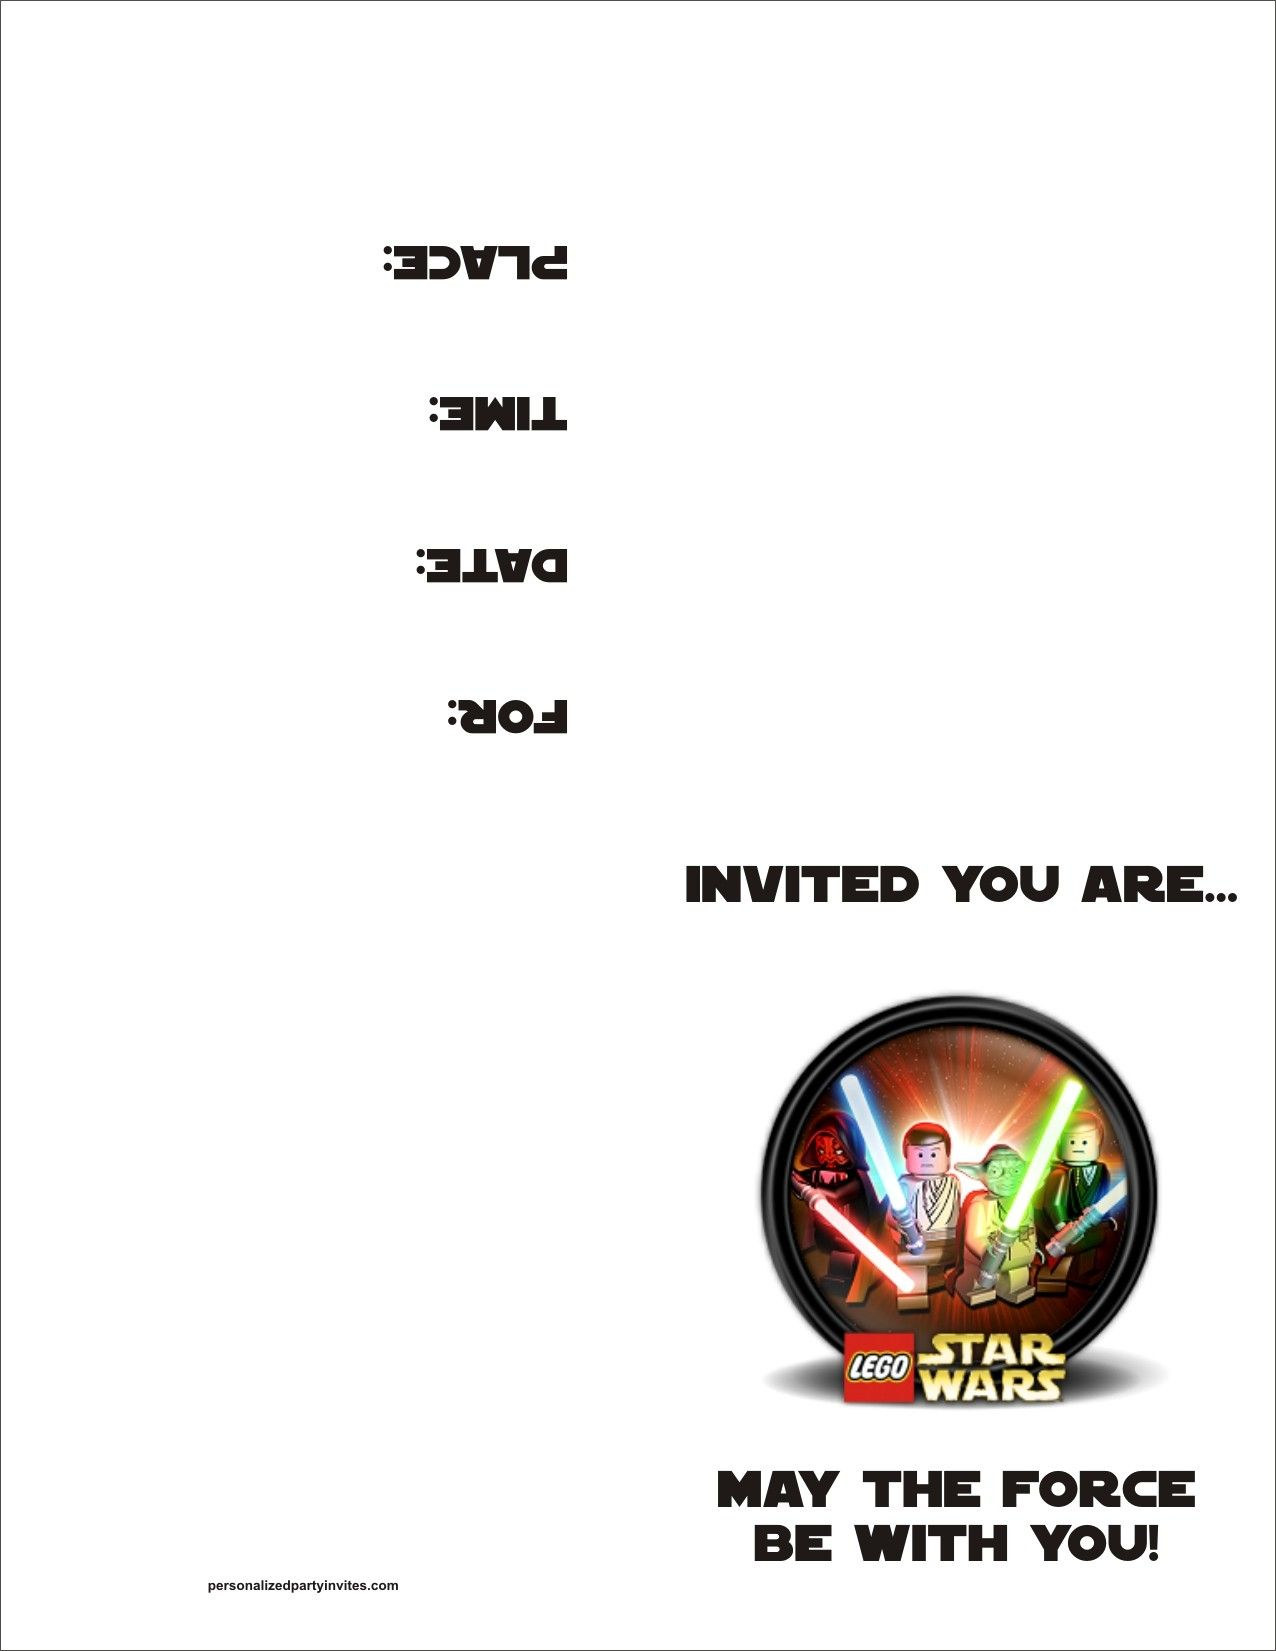 Lego Star Wars Free Printable Birthday Party Invitation. Doing This - Star Wars Invitations Free Printable